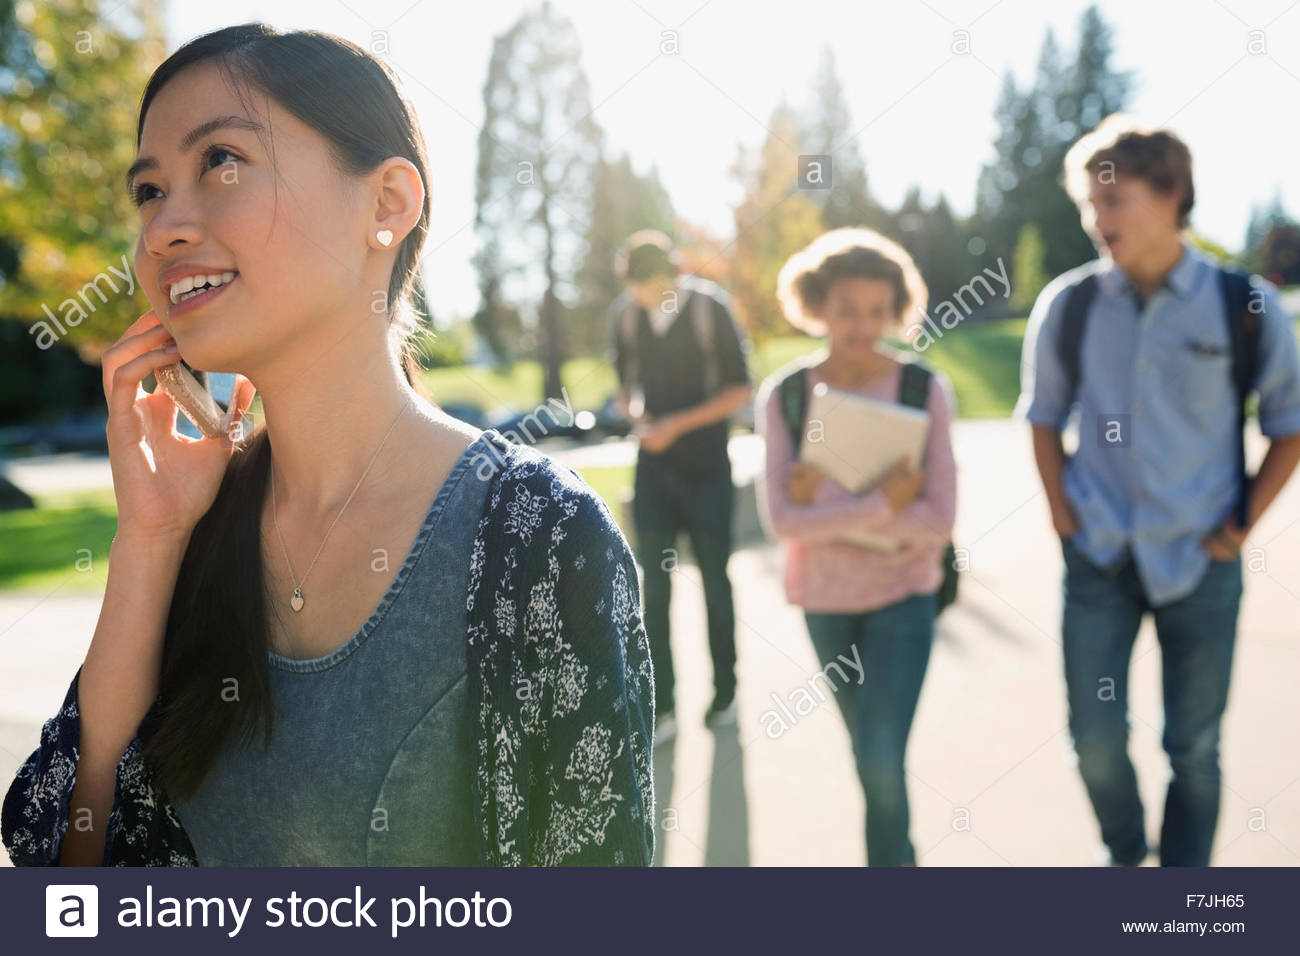 High school student talking on cell phone - Stock Image